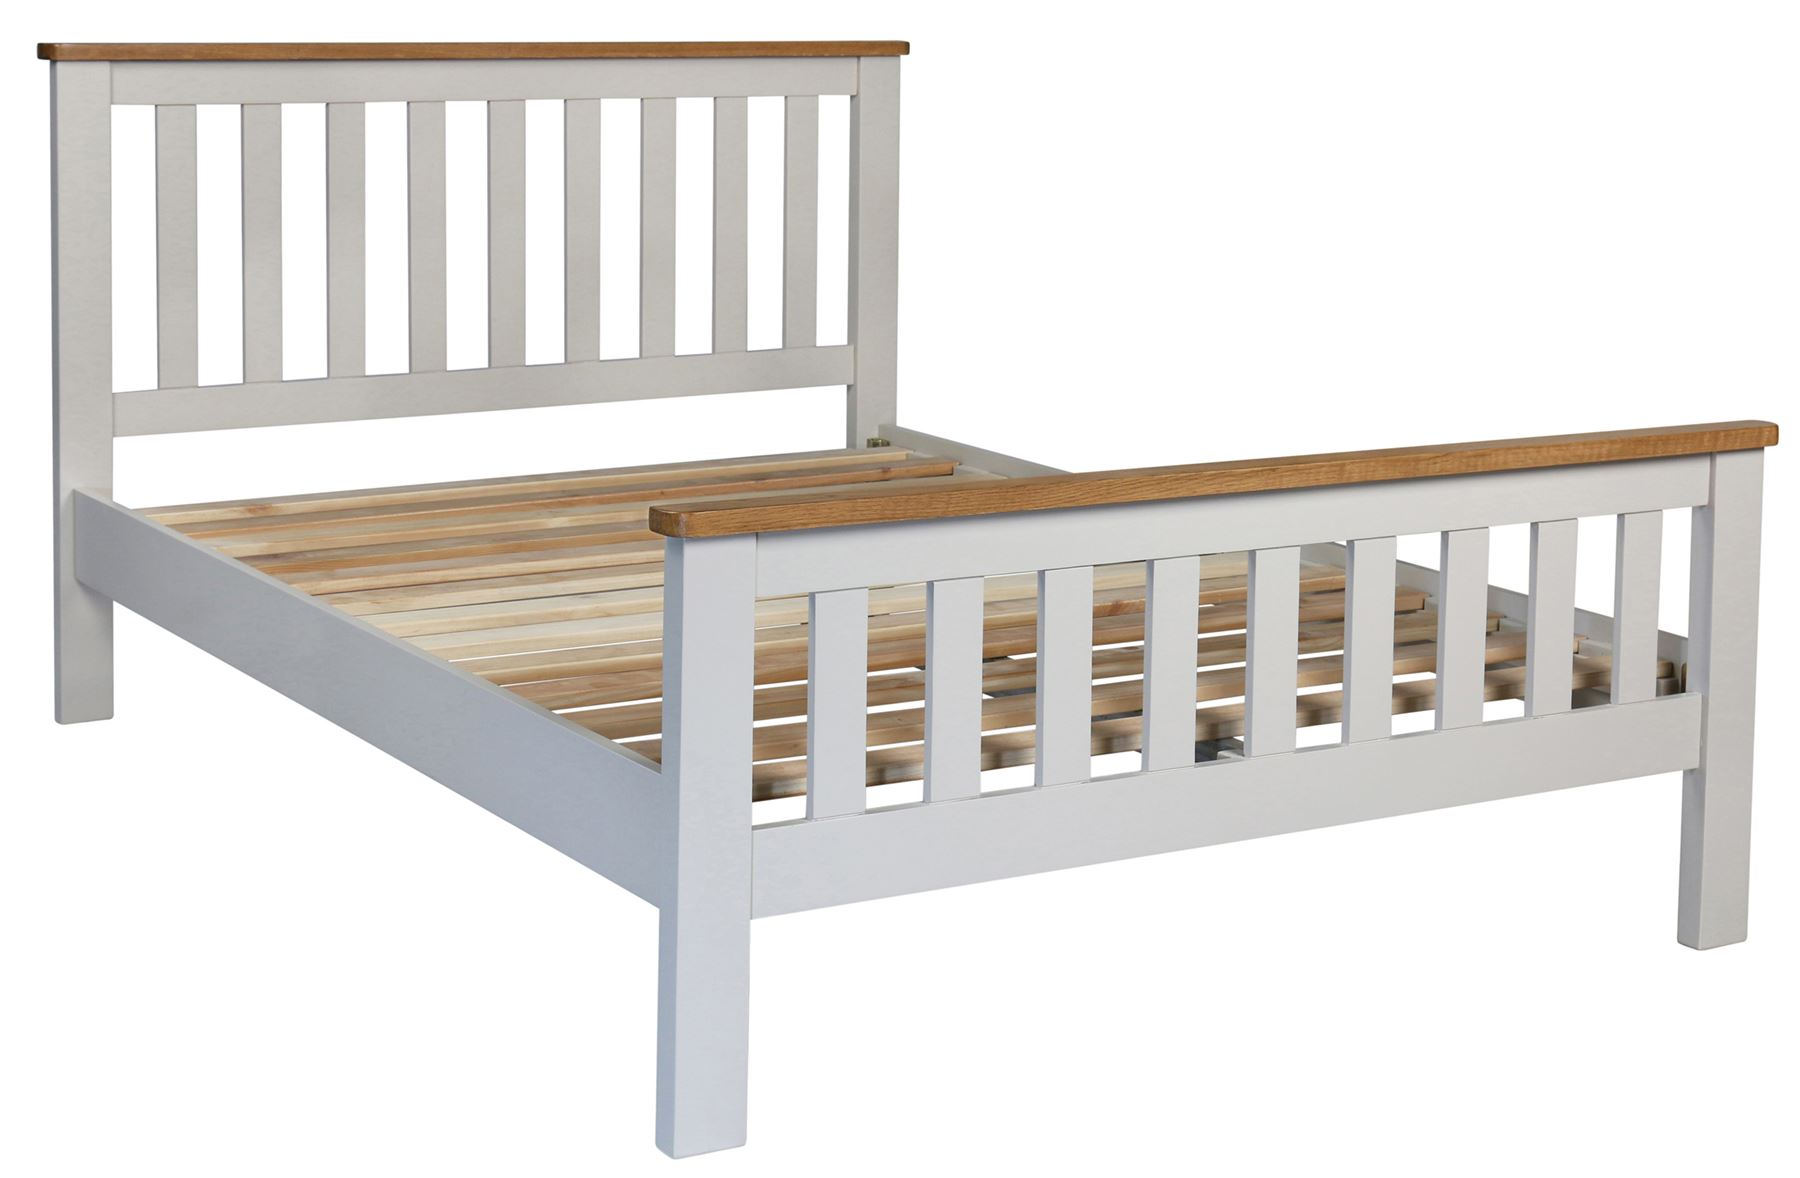 Sweet Dreams Cooper Classic King Size 150cm 5FT Oak & Grey Solid Wood Bed Frame